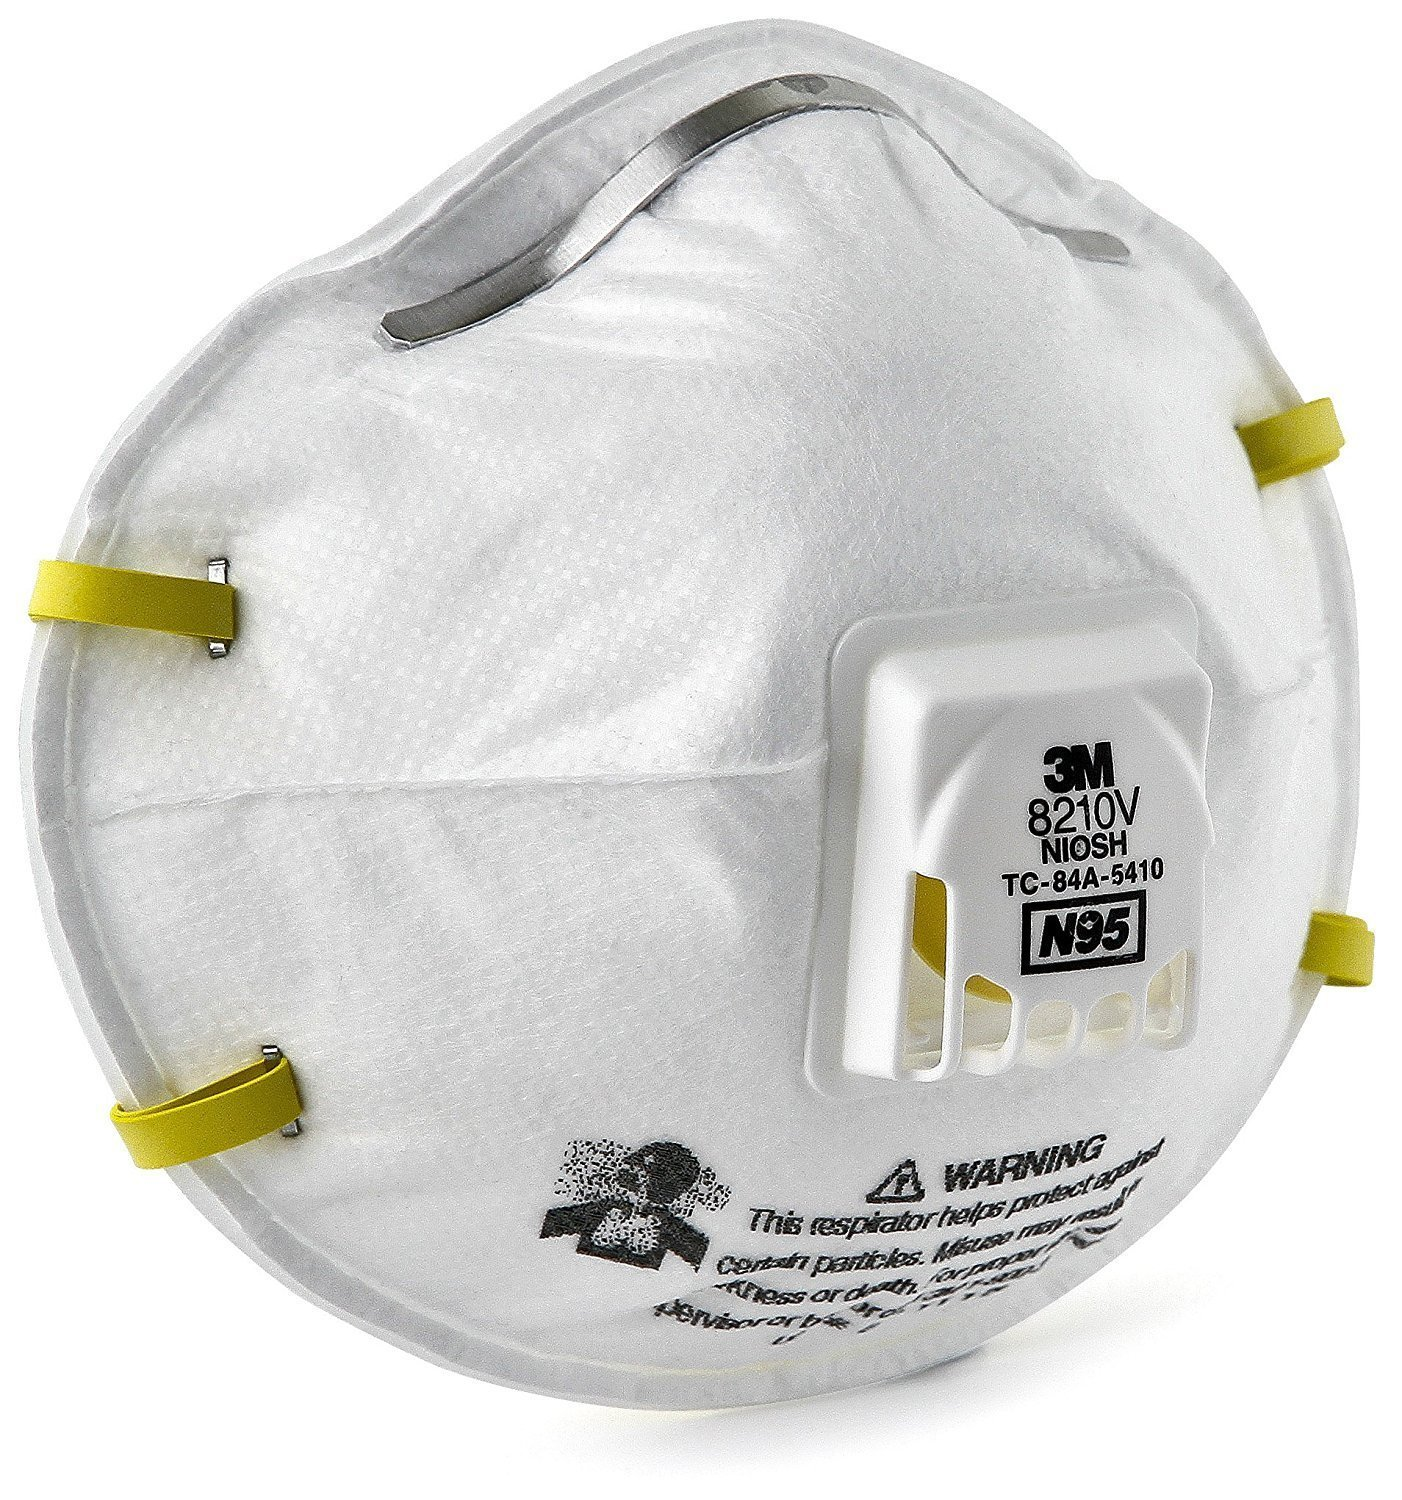 3M 8210V Particulate Respirator, N95 Exhalation Valve, Respiratory Protection, 120 Dust Masks (Case of 12)